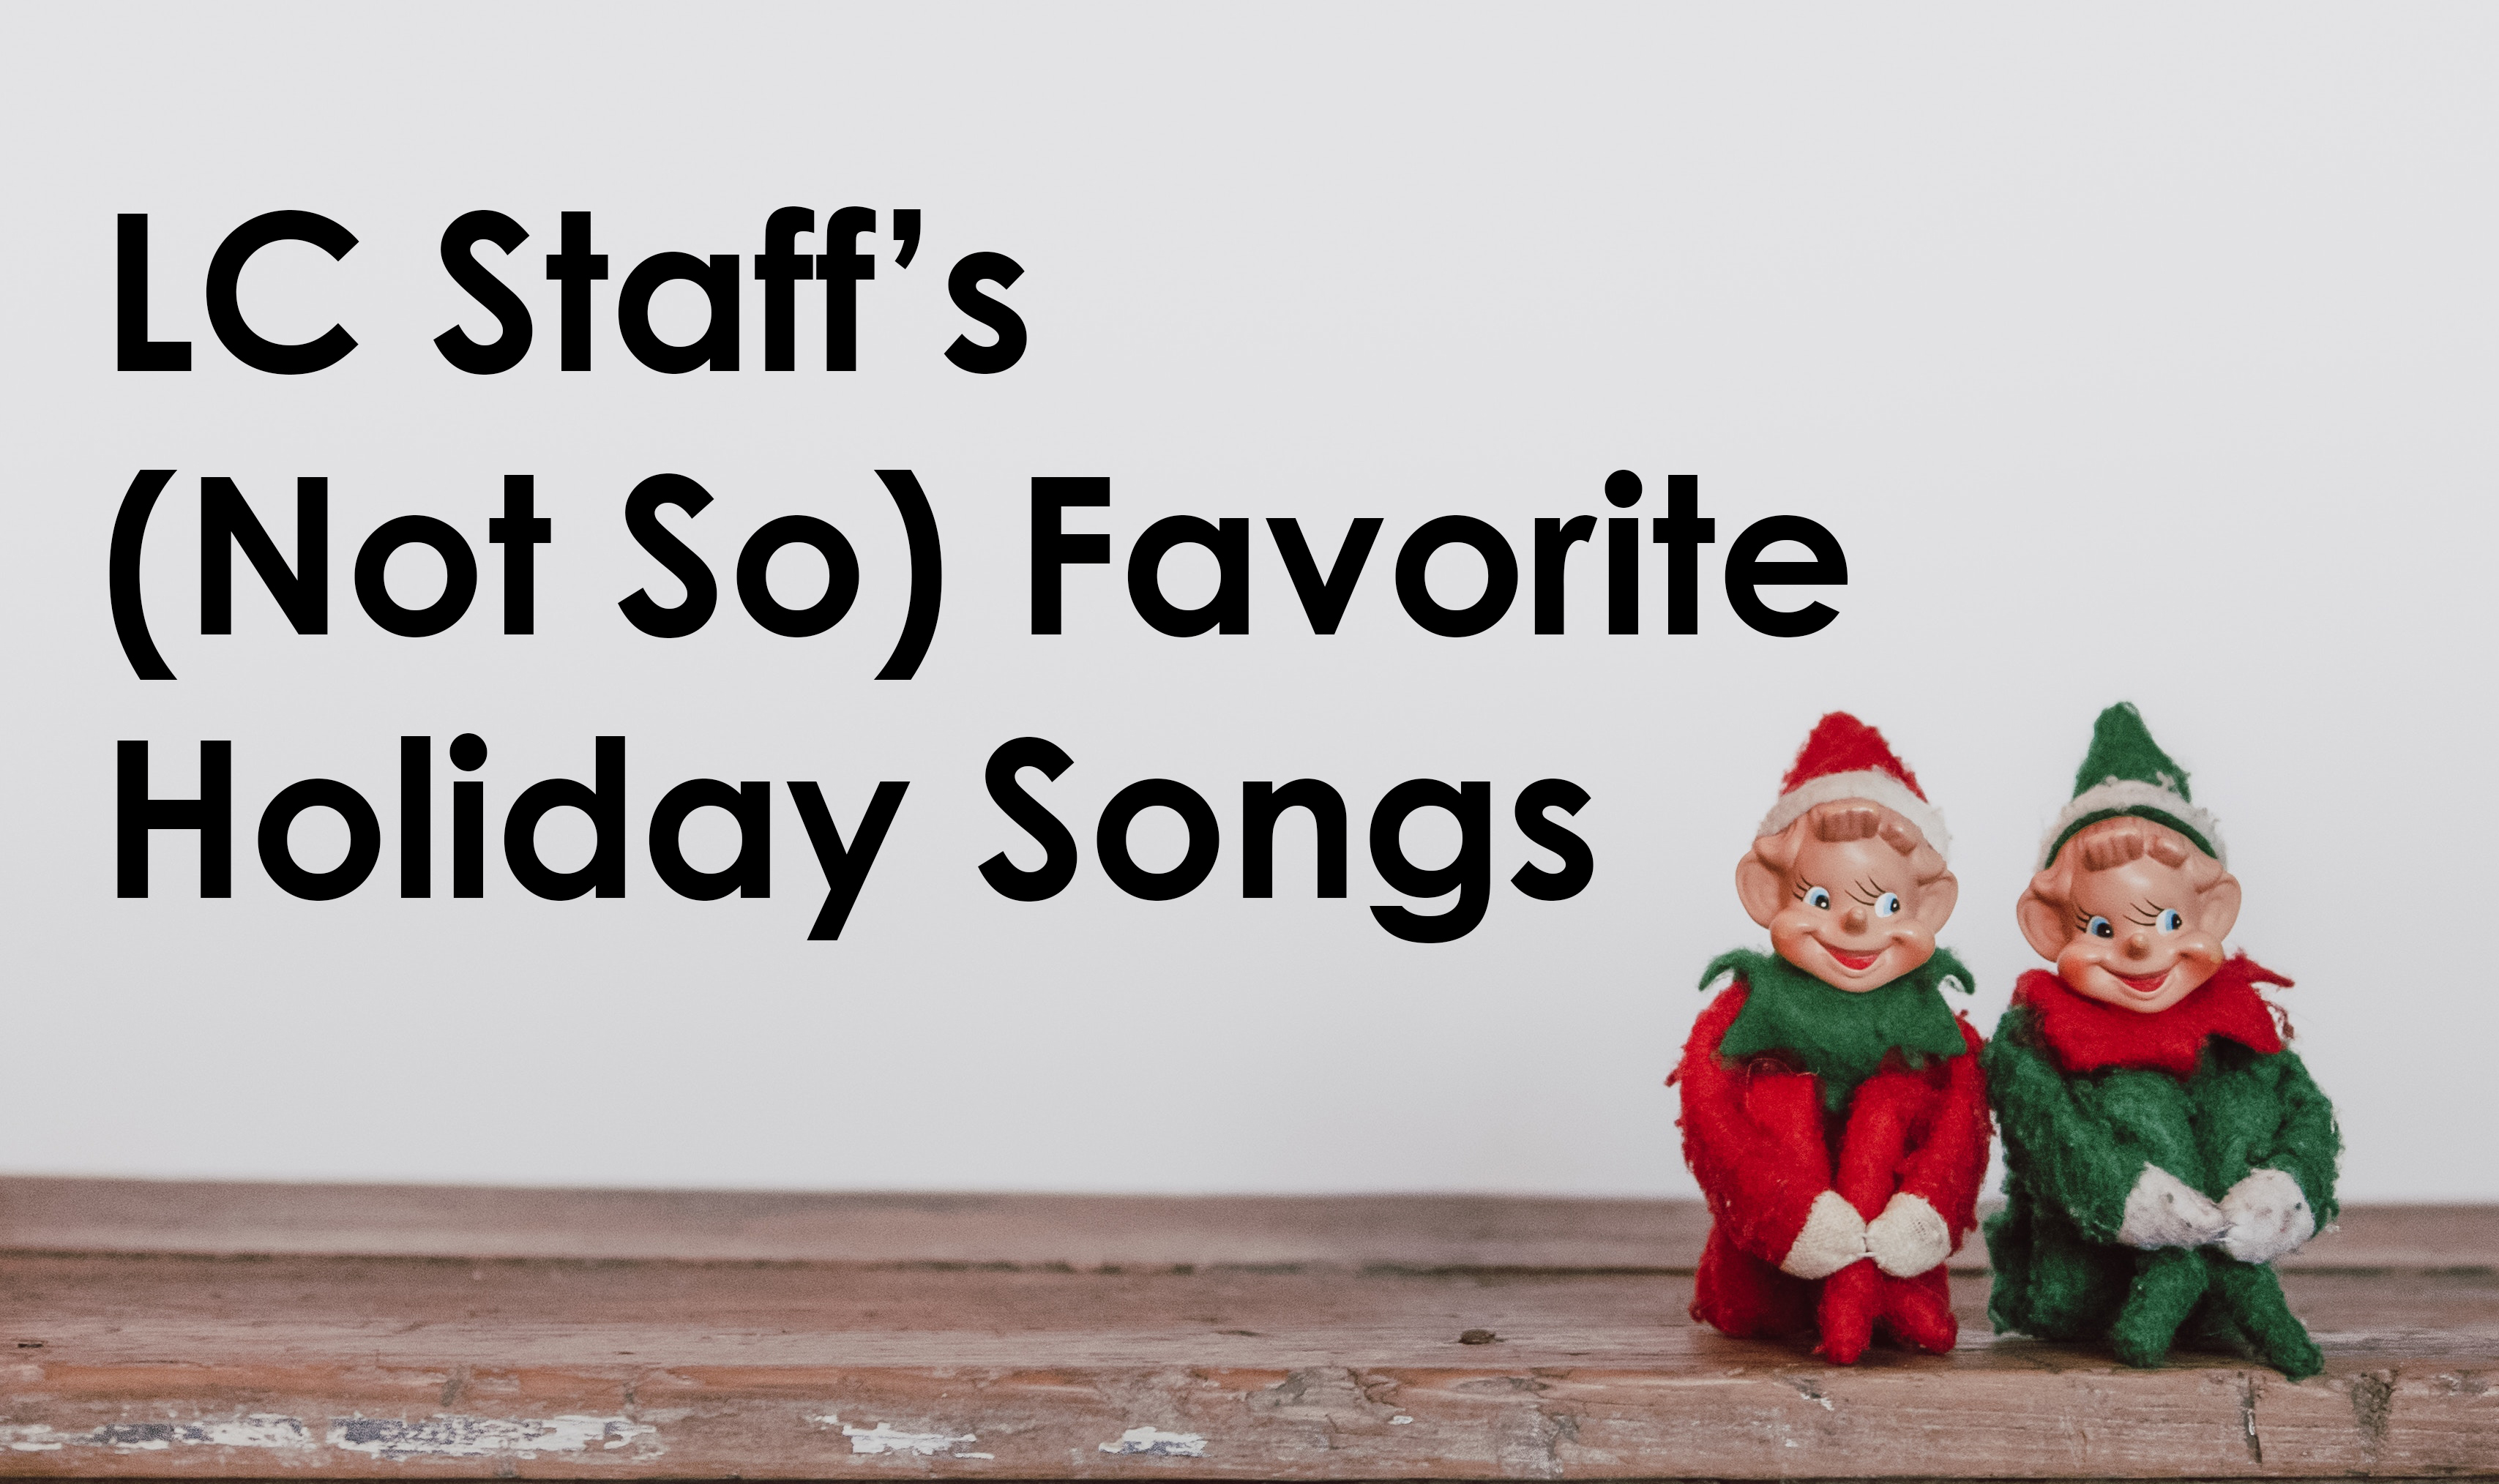 The LC's (Not So) Favorite Holiday Songs